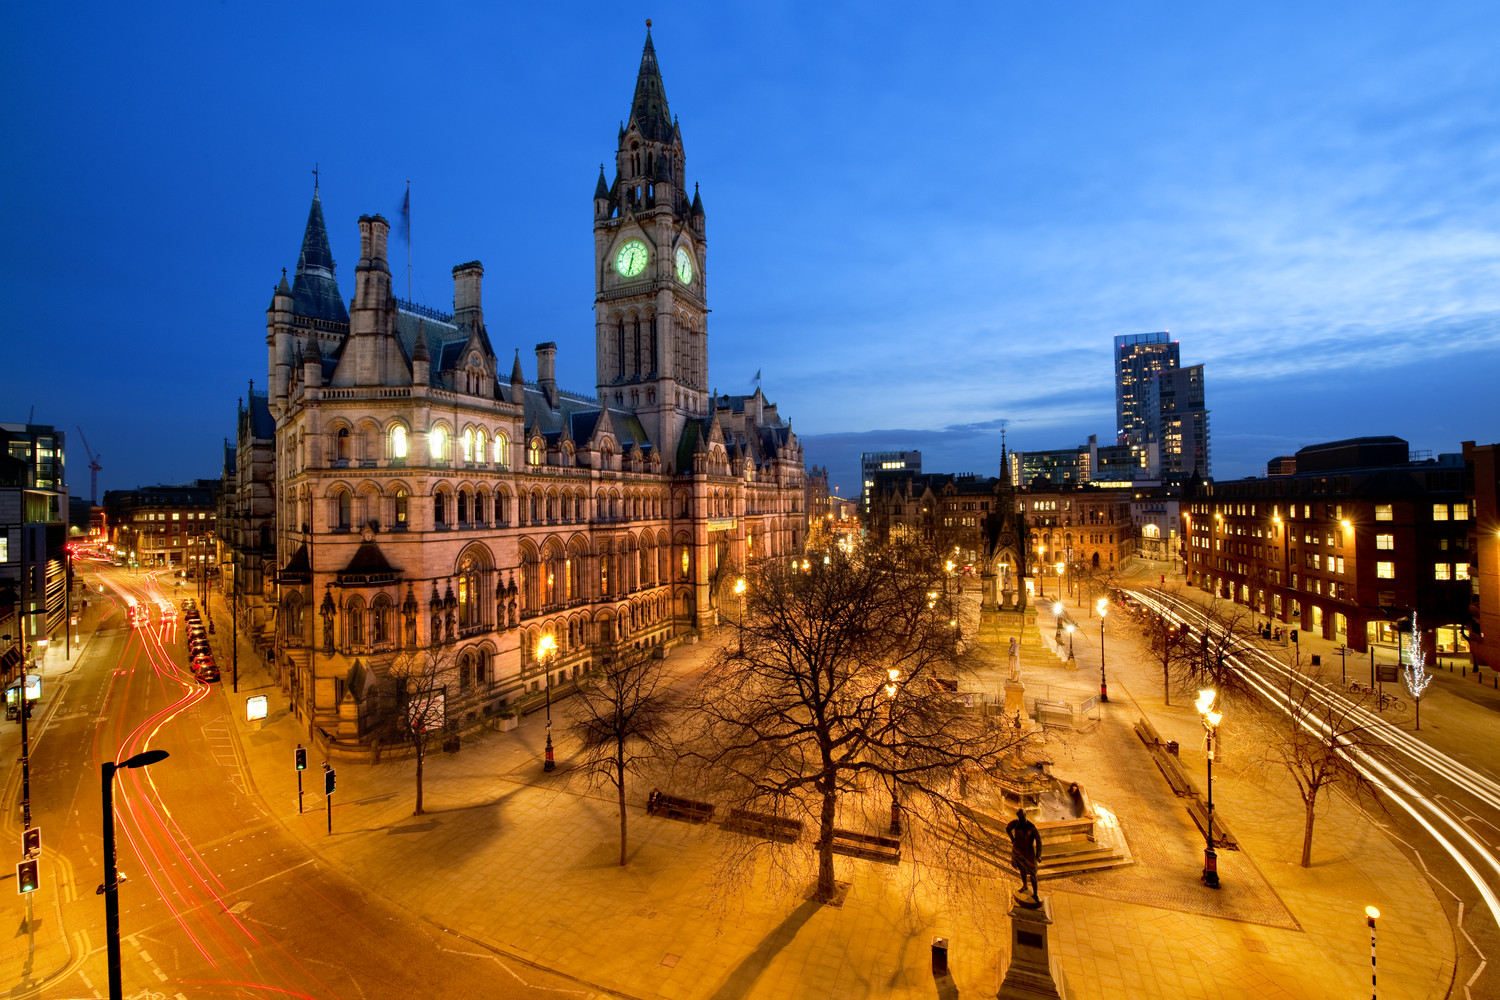 Manchester - City in England - Sightseeing and Landmarks